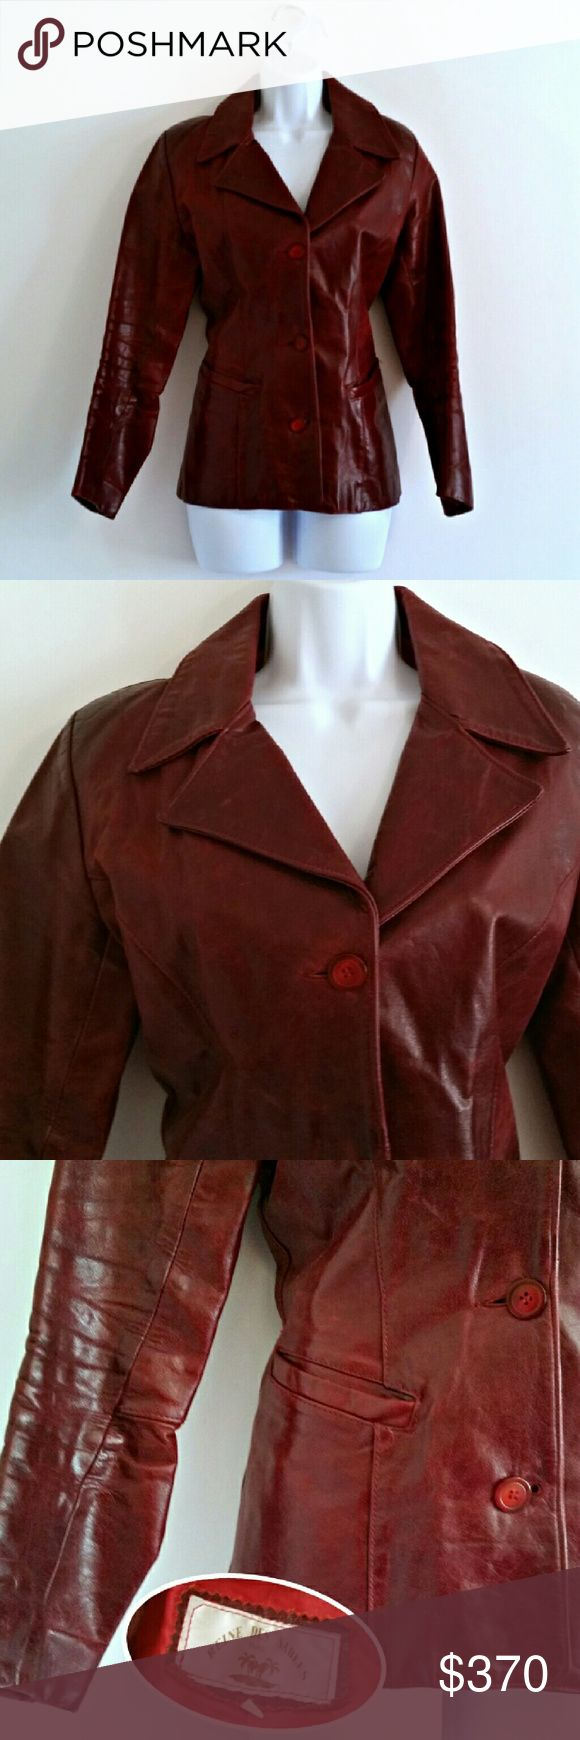 Vintage 70s Leather Jacket from Paris Size XS Lush